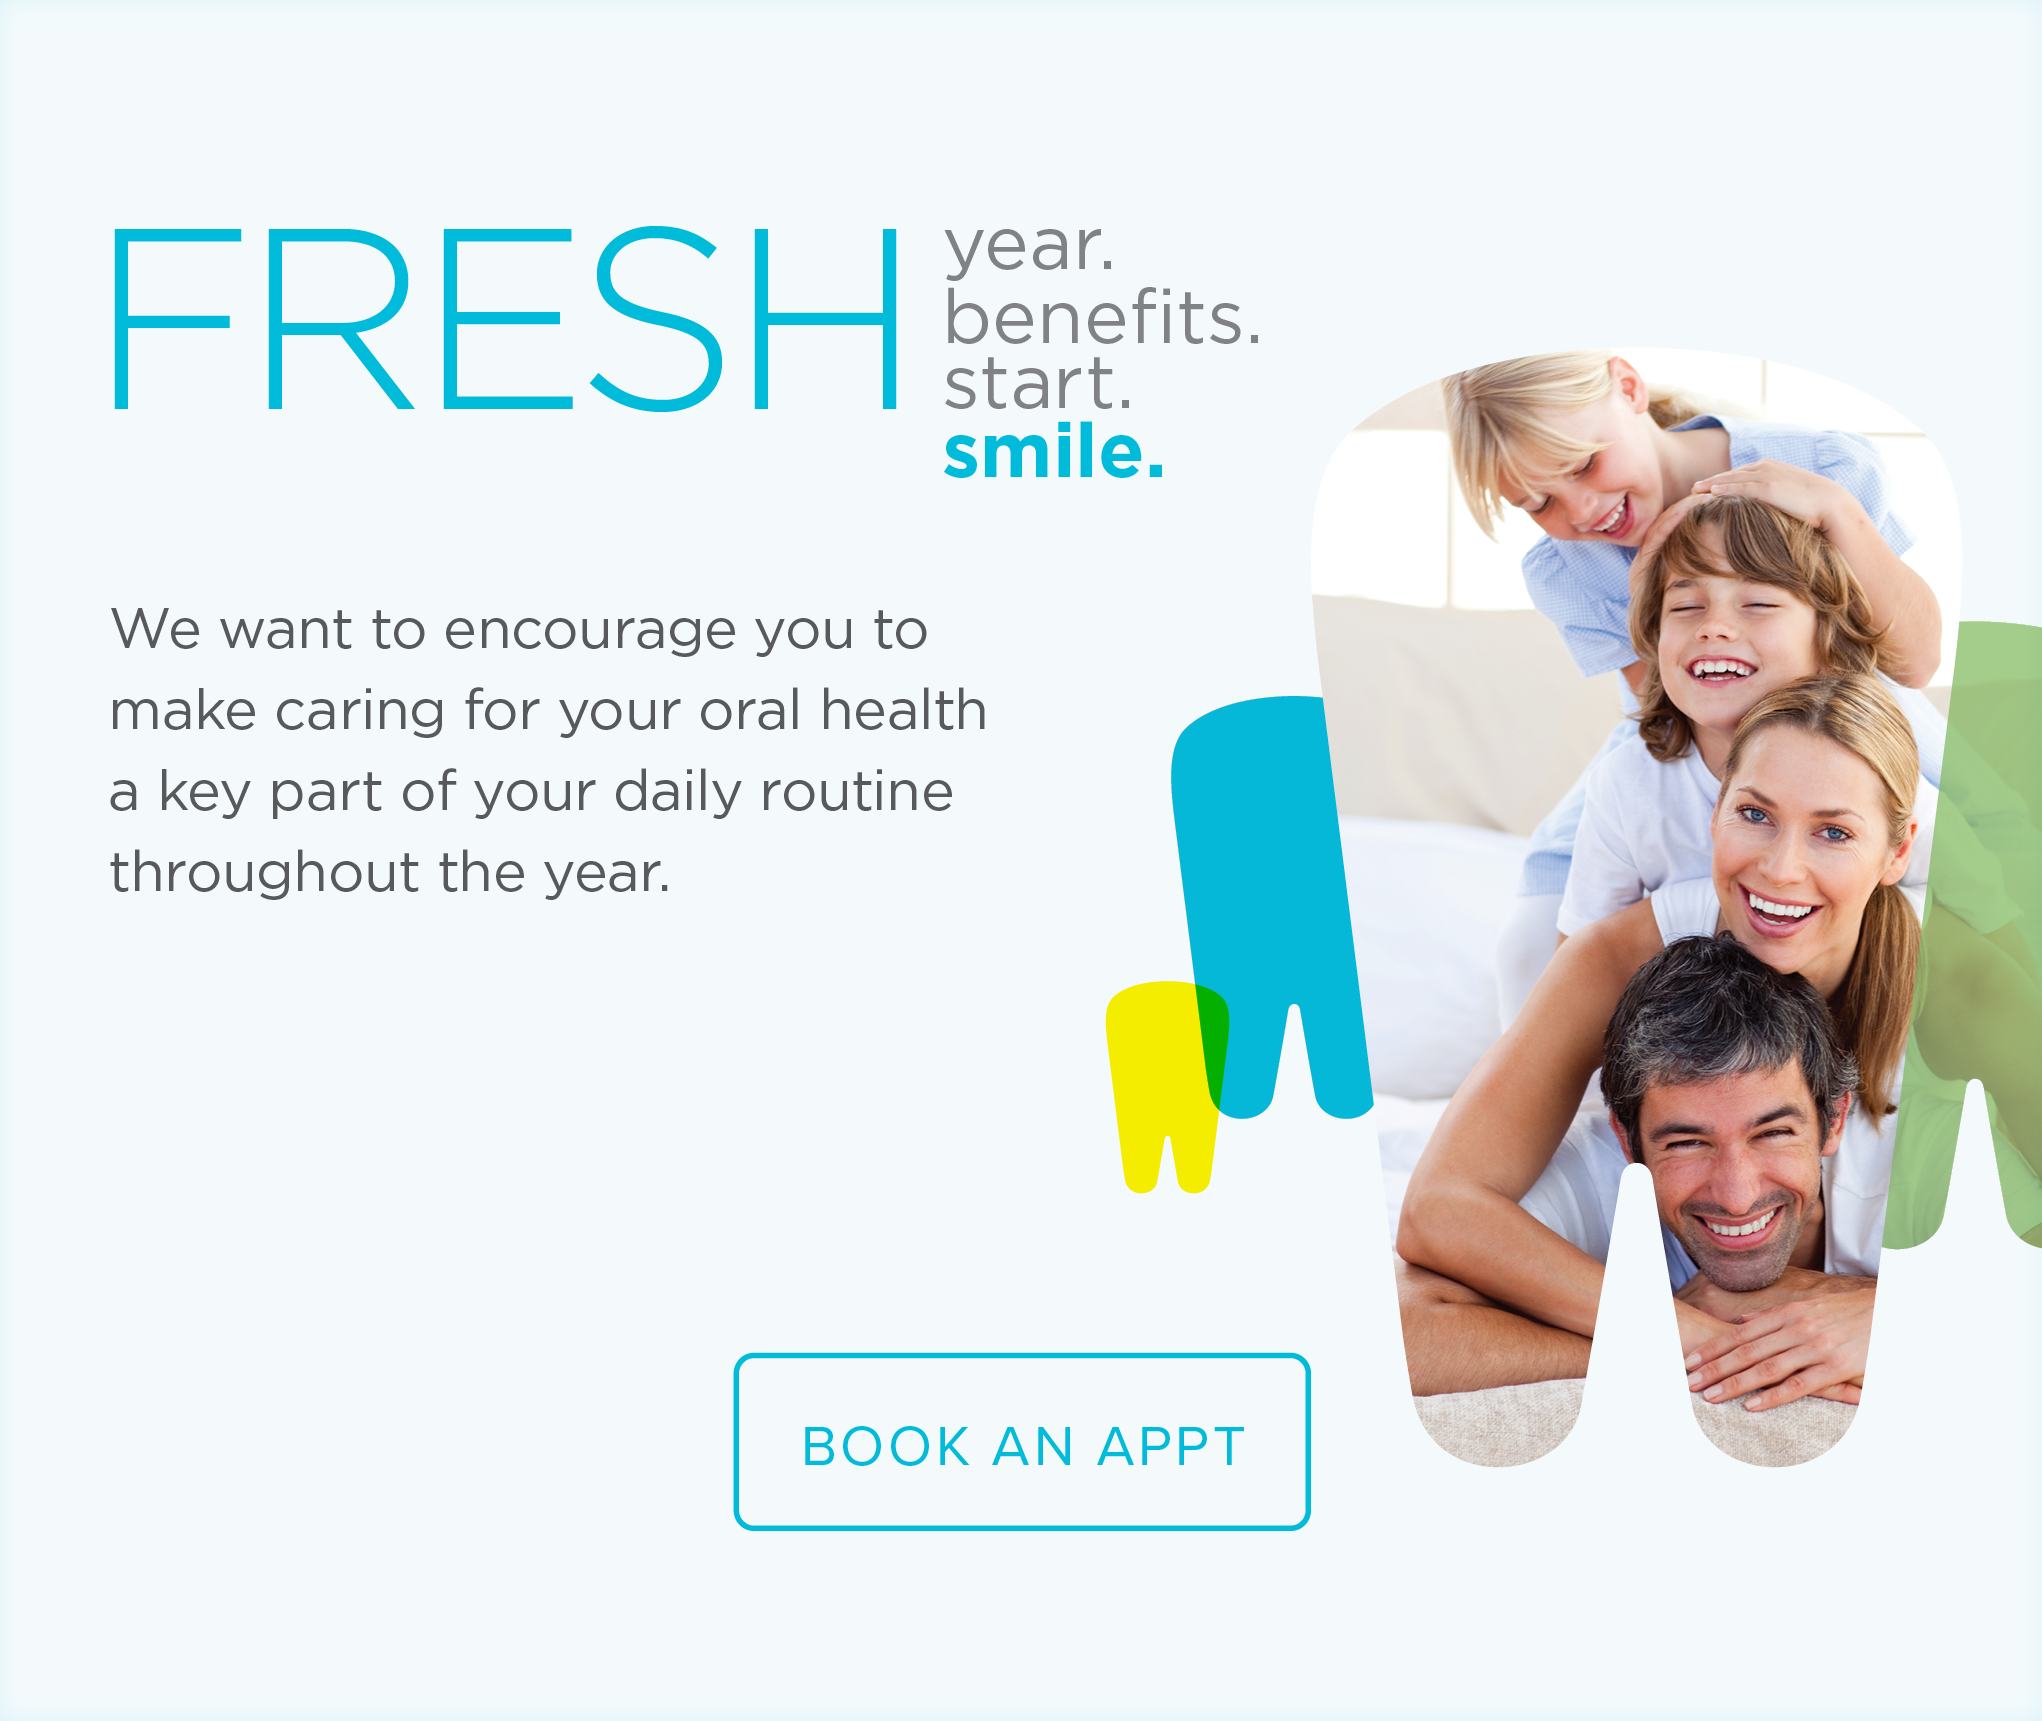 White Bear  Dentists - Make the Most of Your Benefits